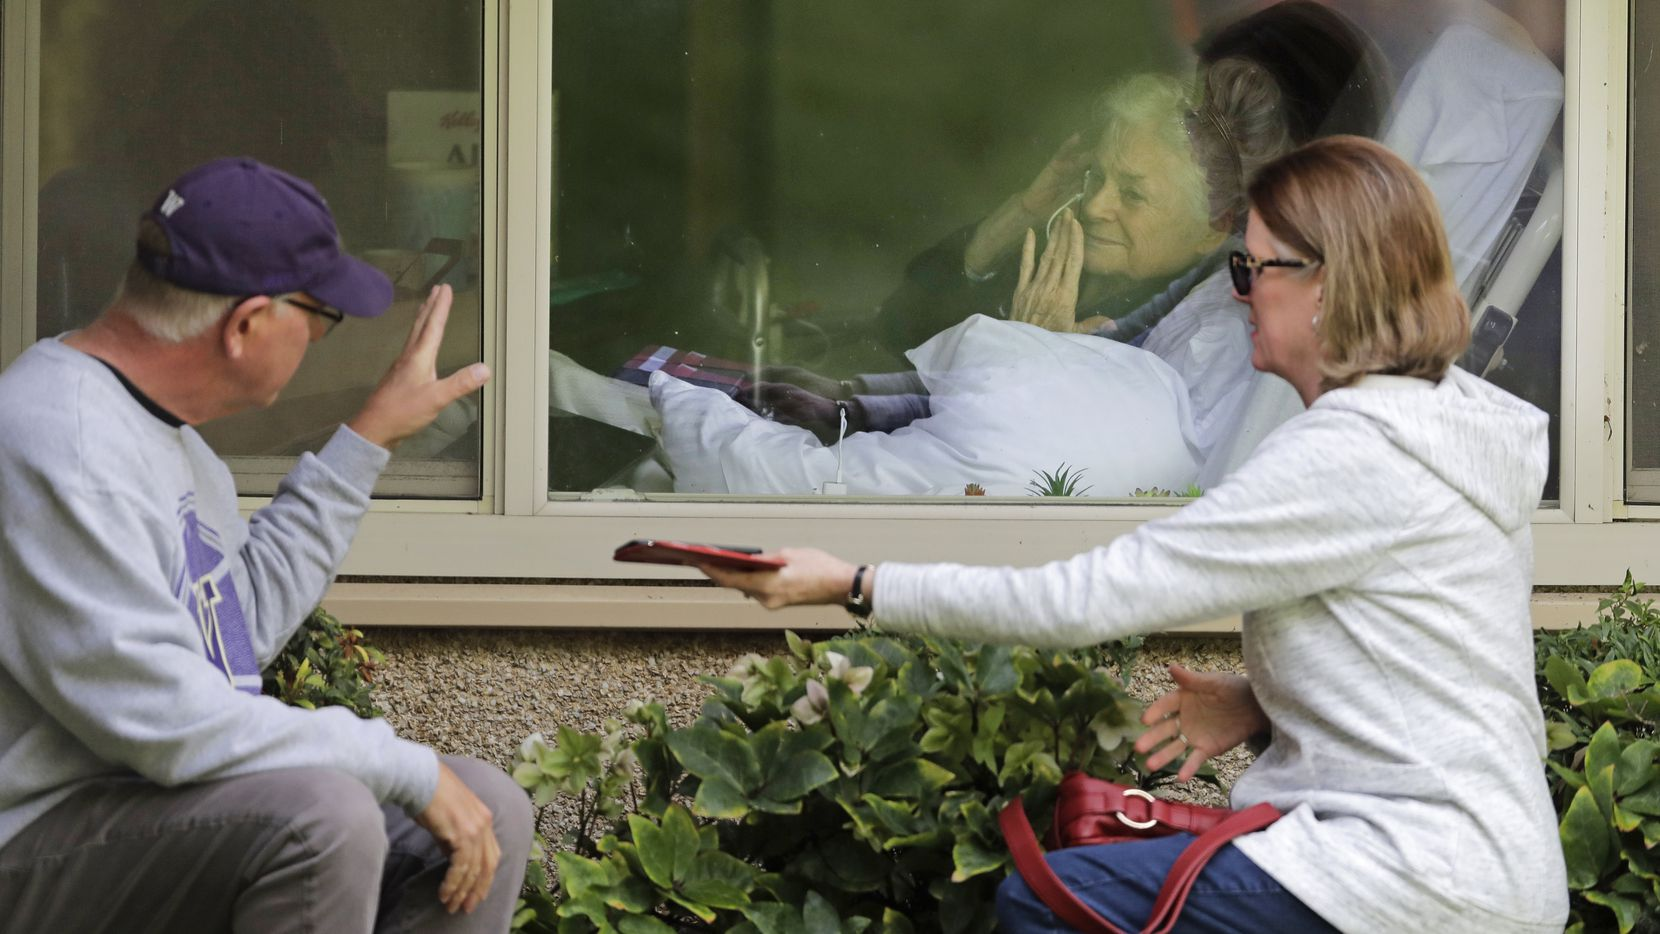 Judie Shape, center, who has tested positive for the coronavirus, blows a kiss to her son-in-law, Michael Spencer, left, as Shape's daughter, Lori Spencer, right, looks on, Wednesday, March 11, 2020, as they visit on the phone and look at each other through a window at the Life Care Center in Kirkland, Wash., near Seattle.